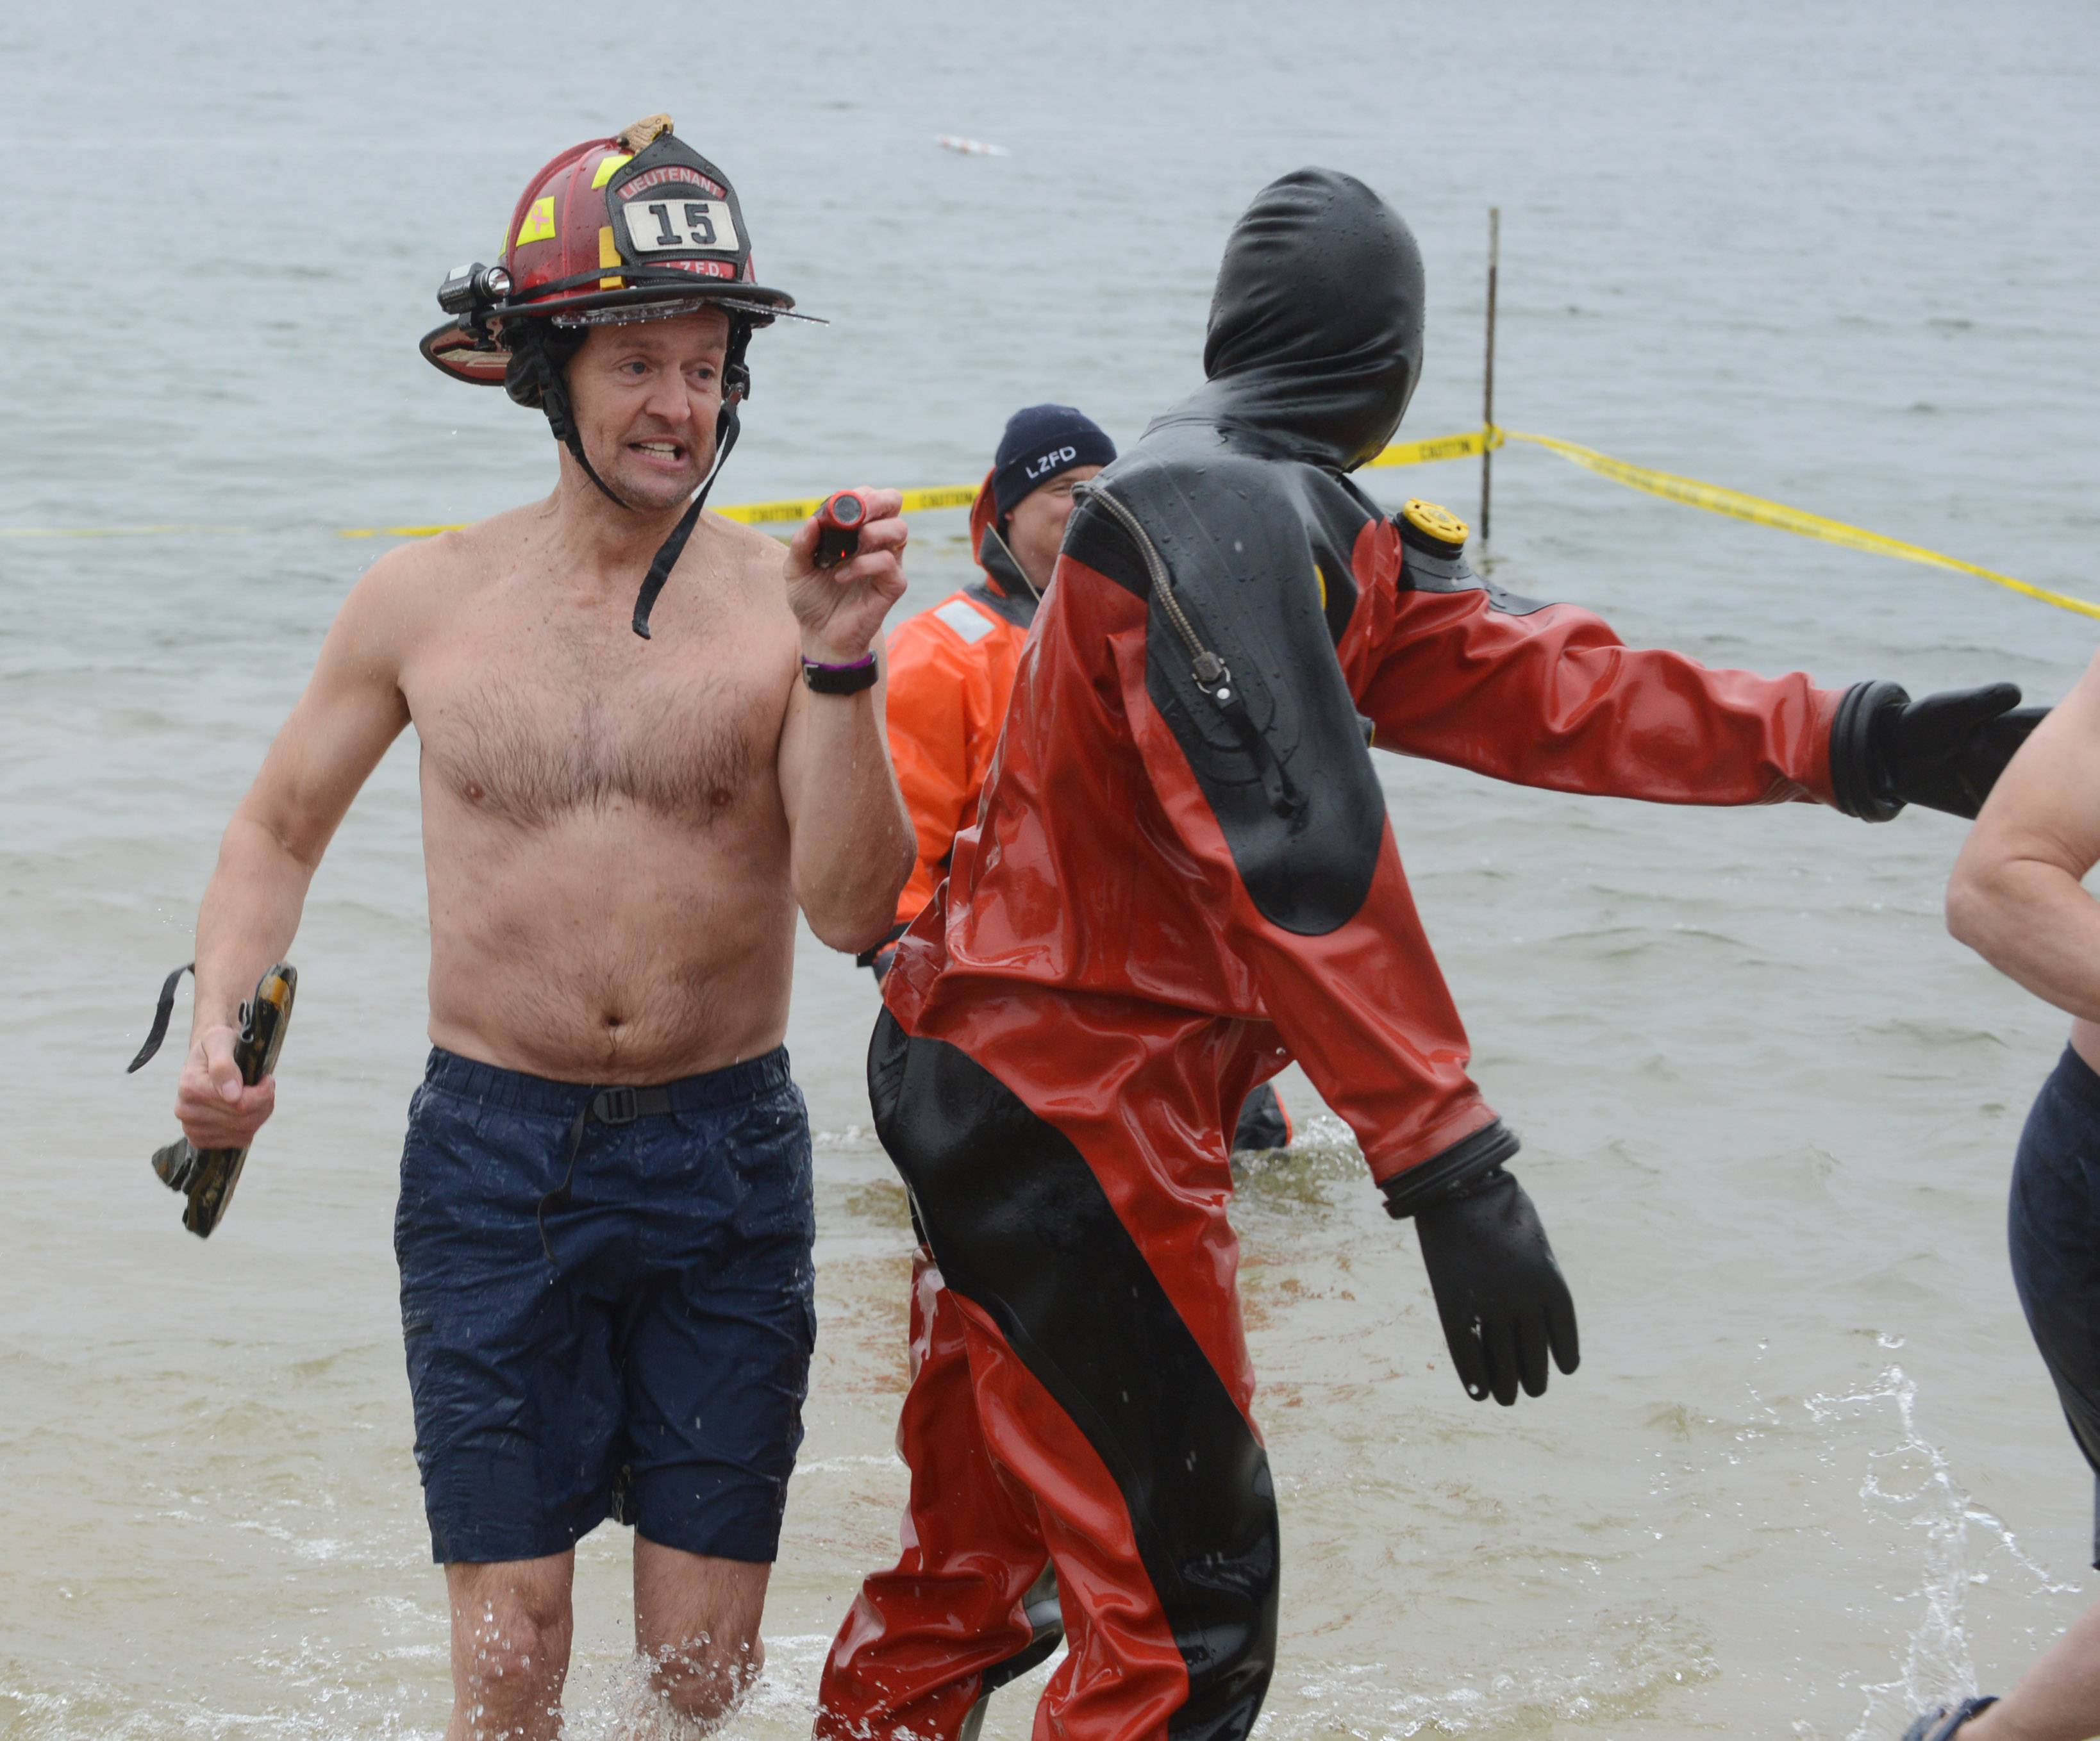 Lake Zurich Fire Rescue Deputy Chief Rick Johnson exits the frigid lake water during the Purple Polar Plunge at Breezewald Park and Beach in Lake Zurich Saturday.